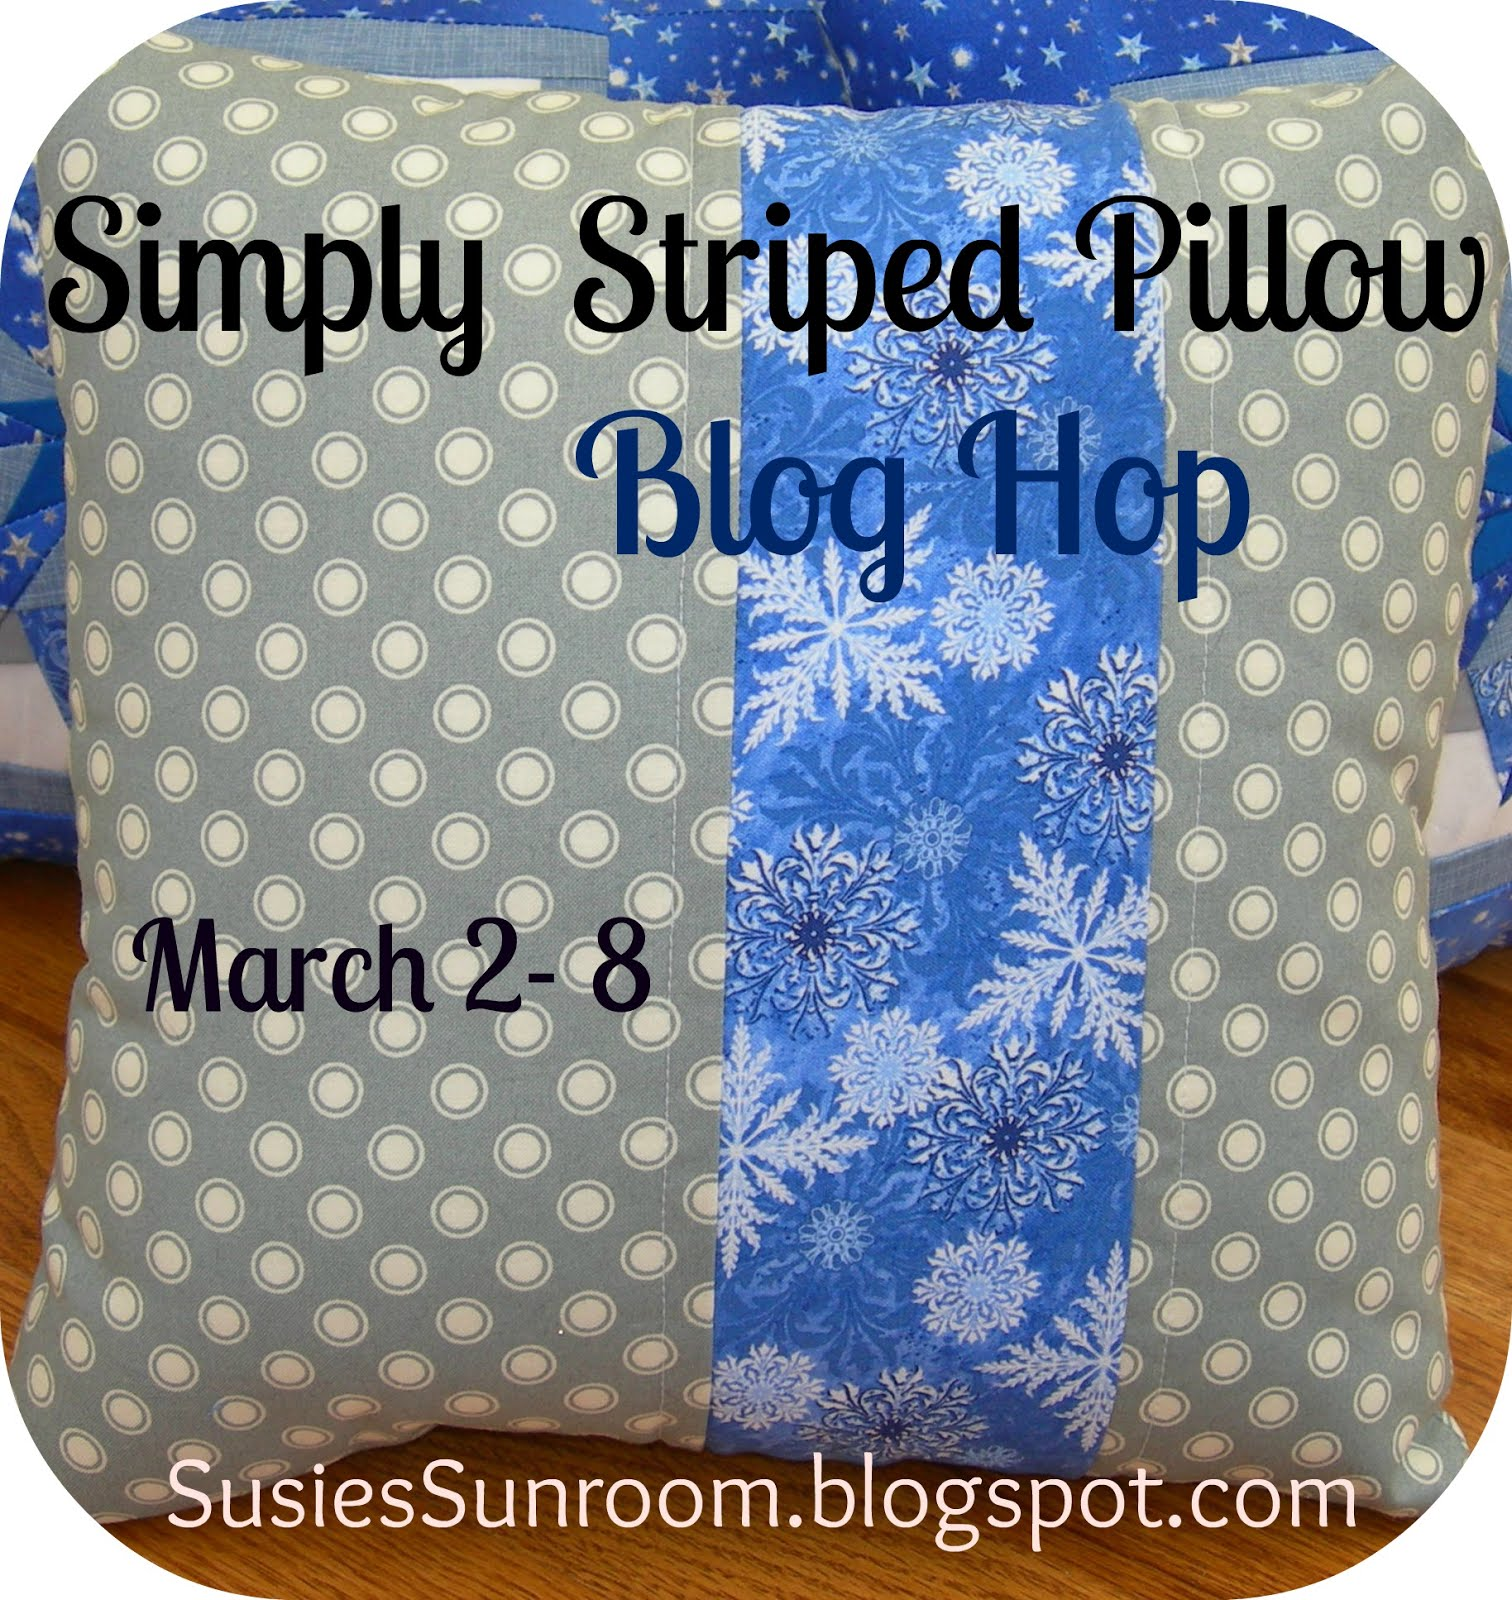 Simply Striped Pillow Blog Hop  March 2-8